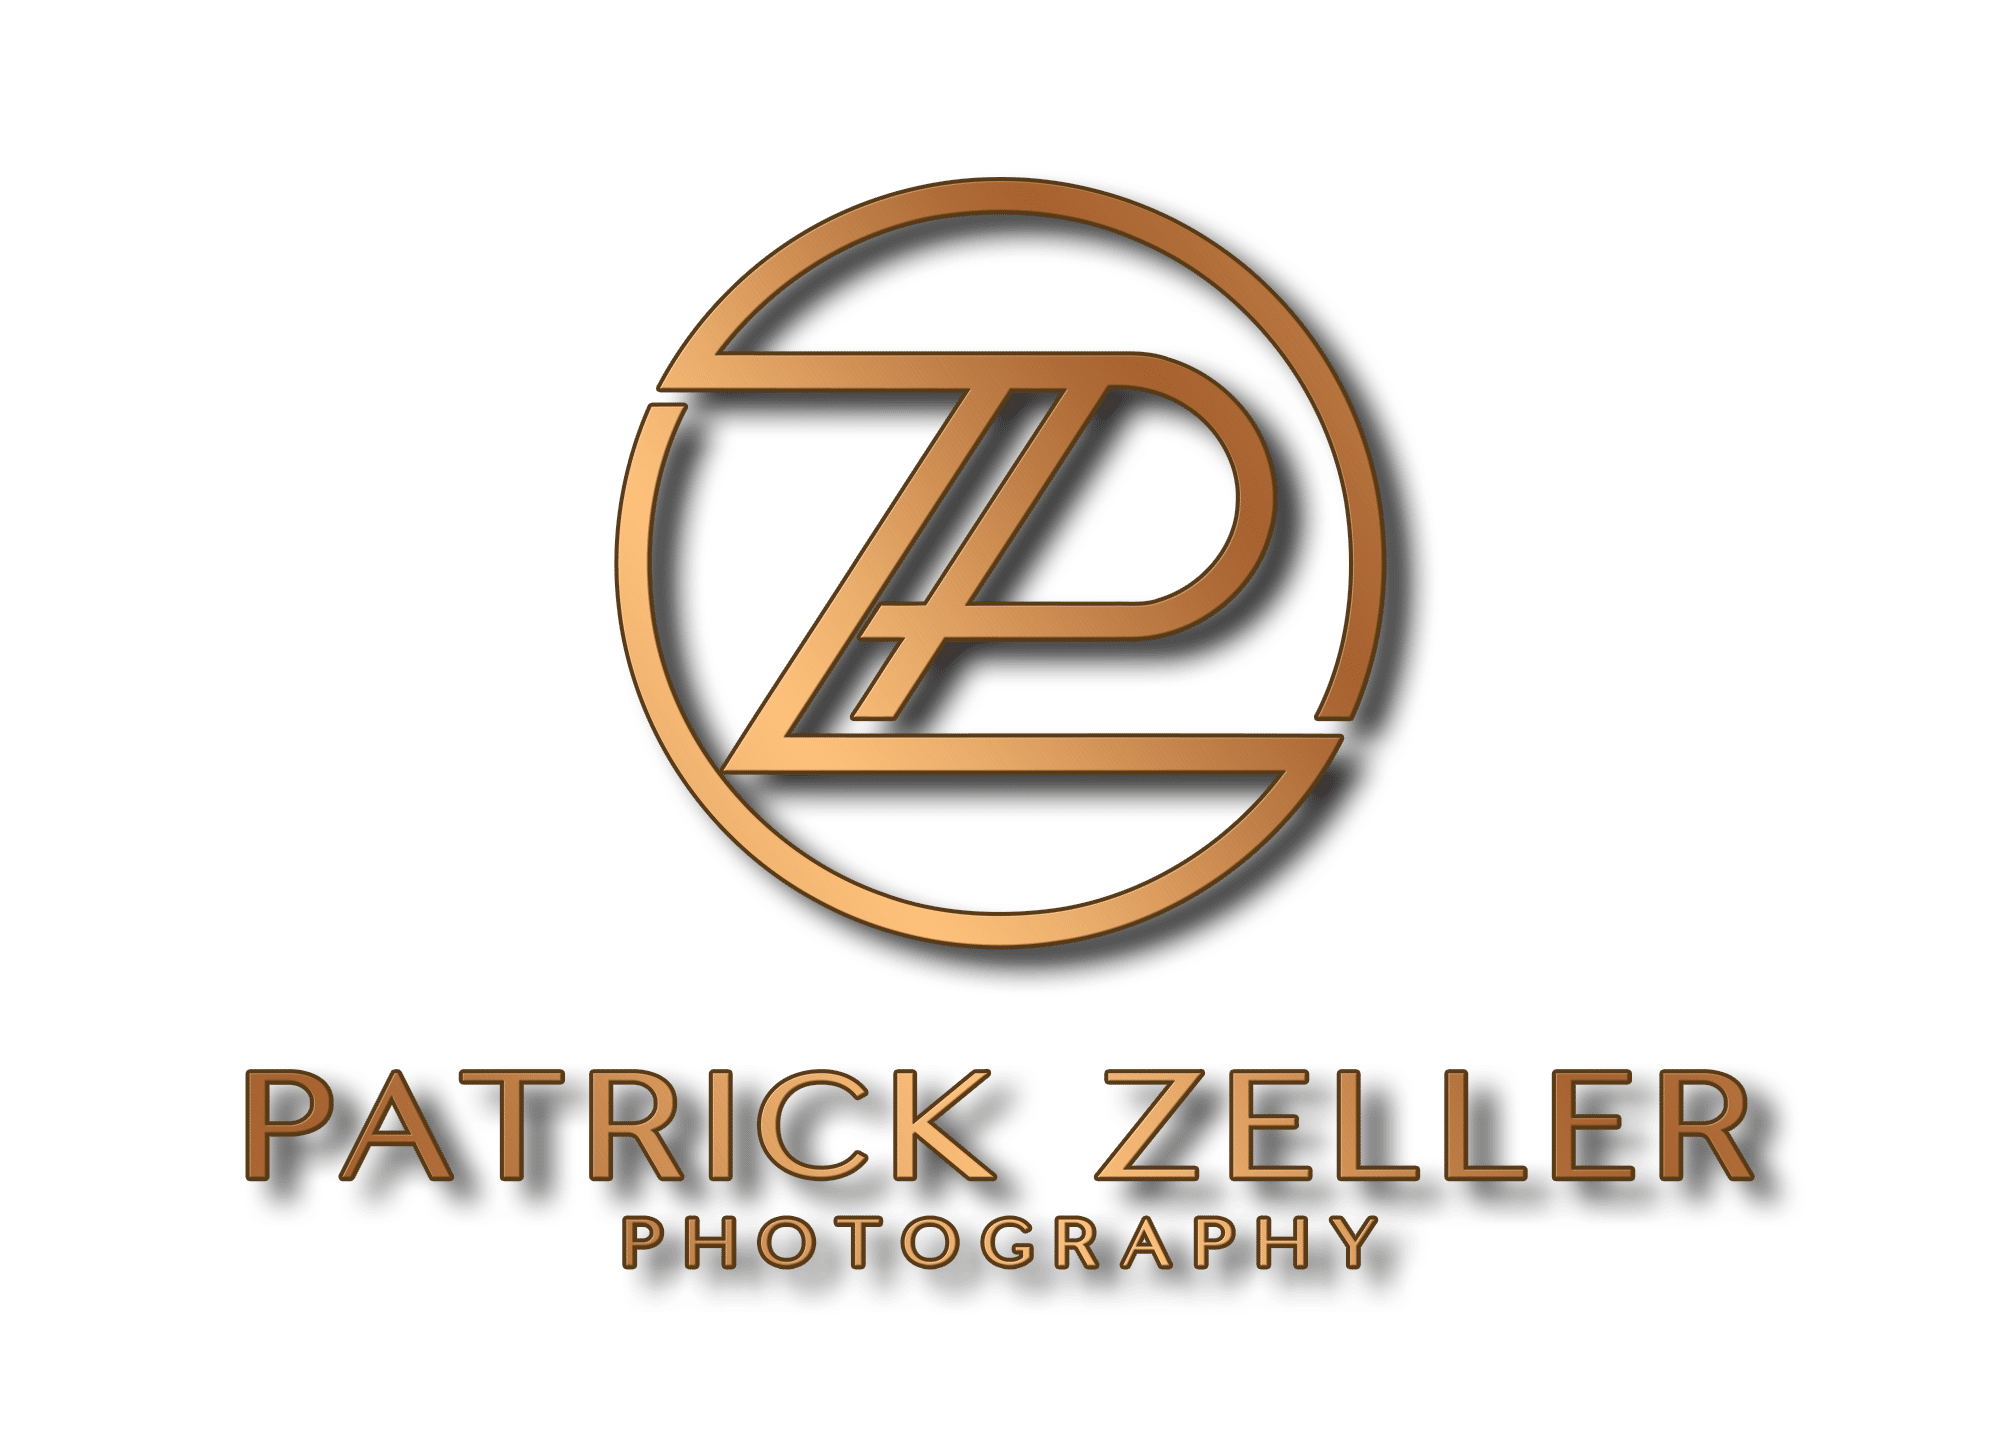 Patrick Zeller Photography